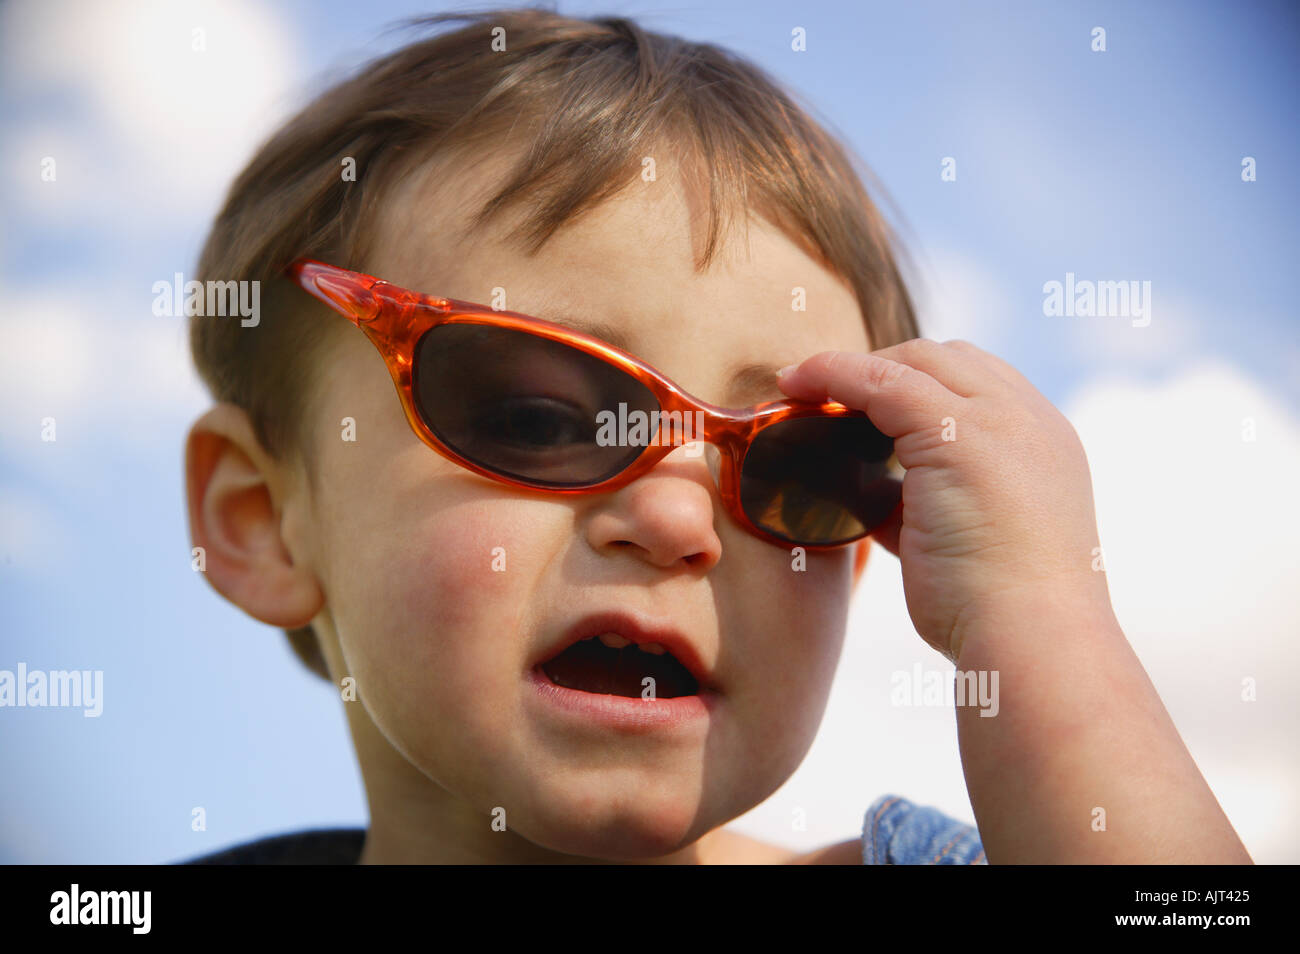 0f2077ff87805 Cool dude in shades Stock Photo  2753572 - Alamy